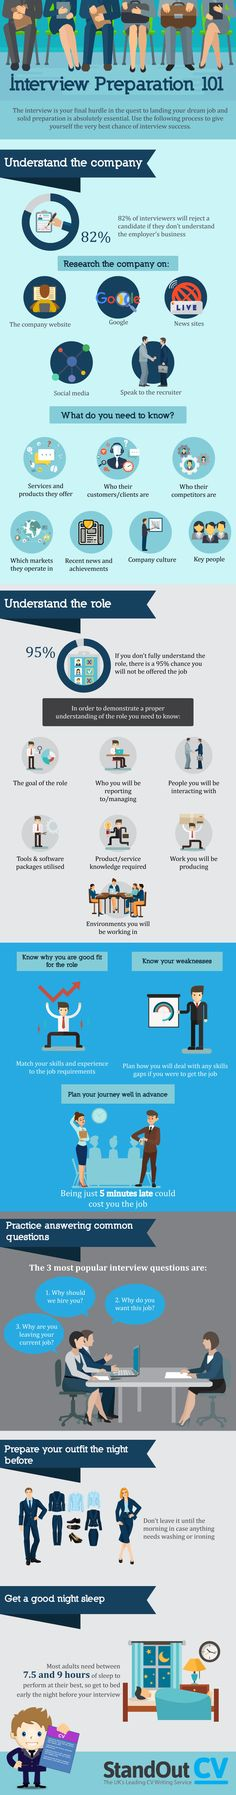 Interview Preparation 101 #Infographic #Career #Interview